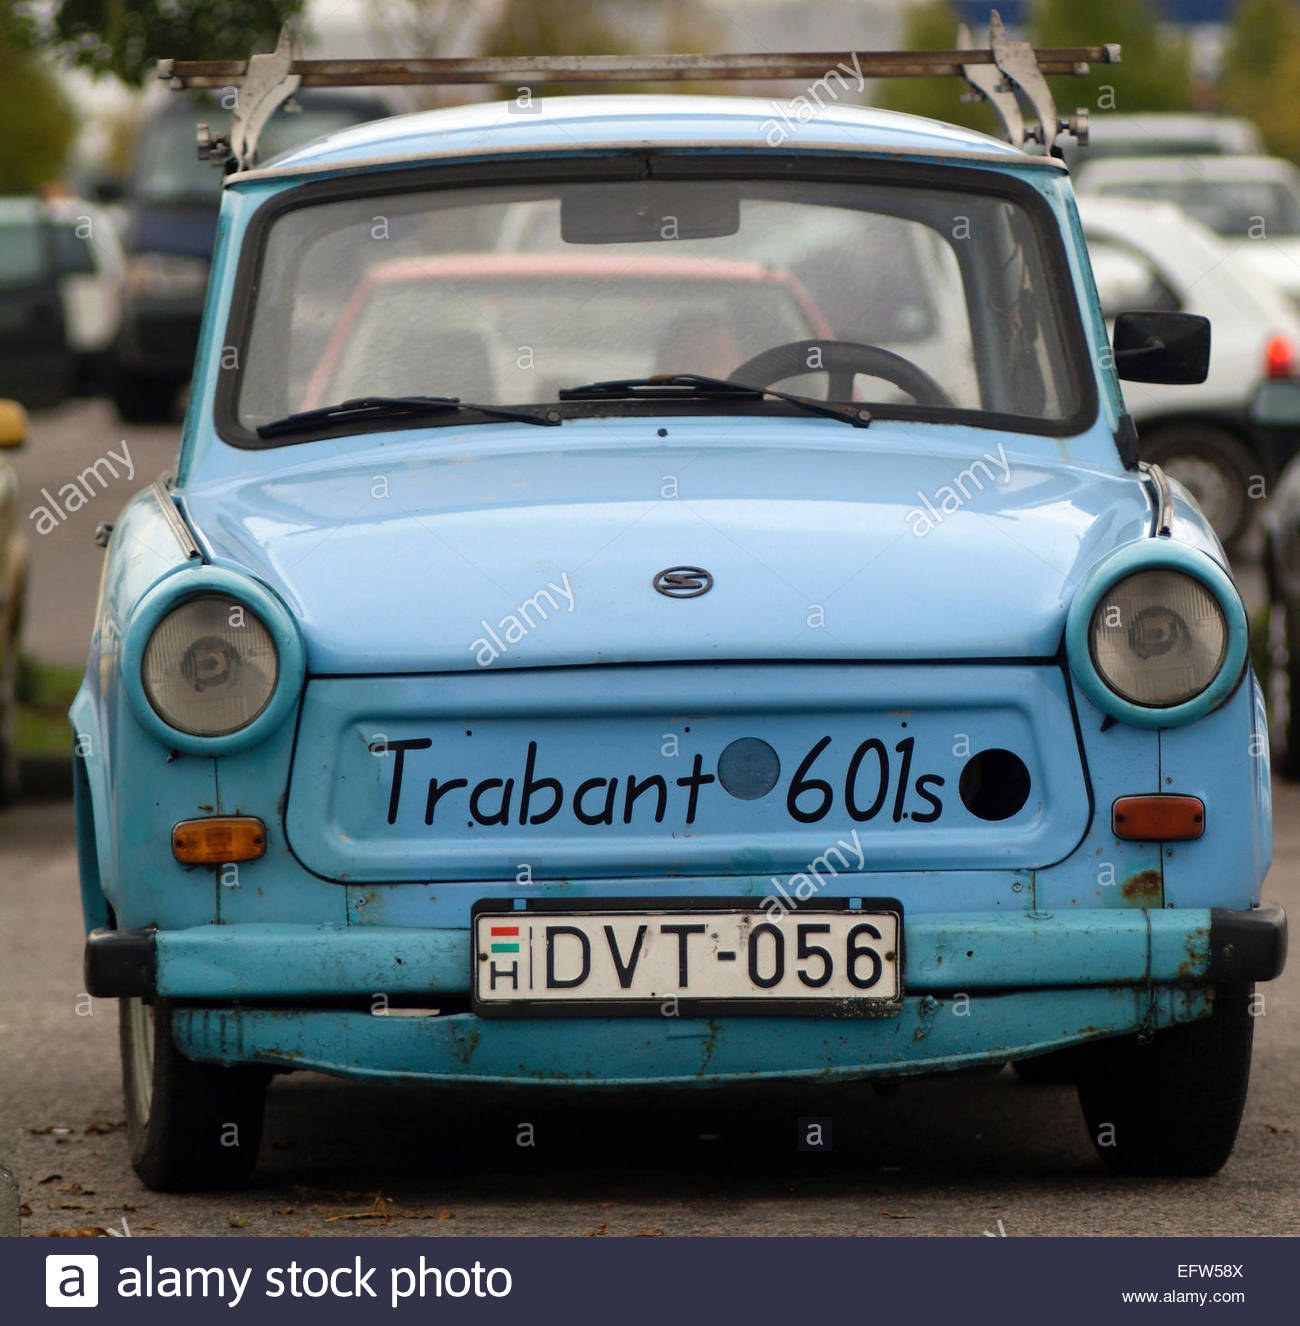 Trabat 601s car - the worlds most unreliable - Hungary Nobody Stock ...